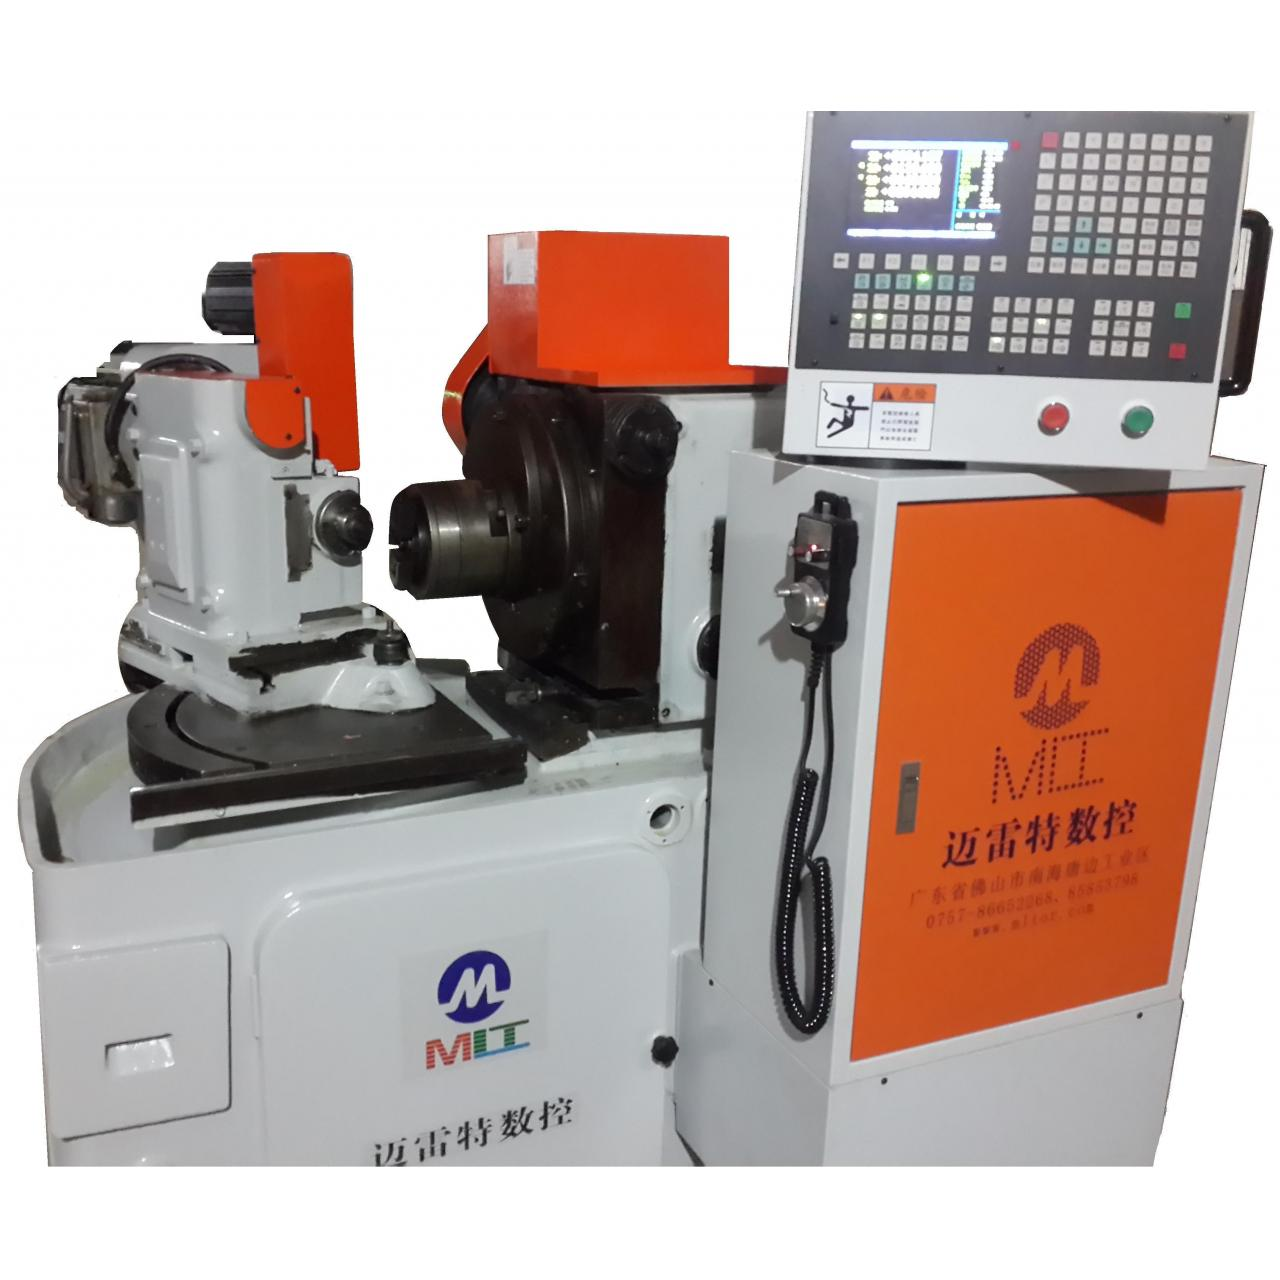 Buy cheap Mltor Oerlikon gear millling machine from wholesalers